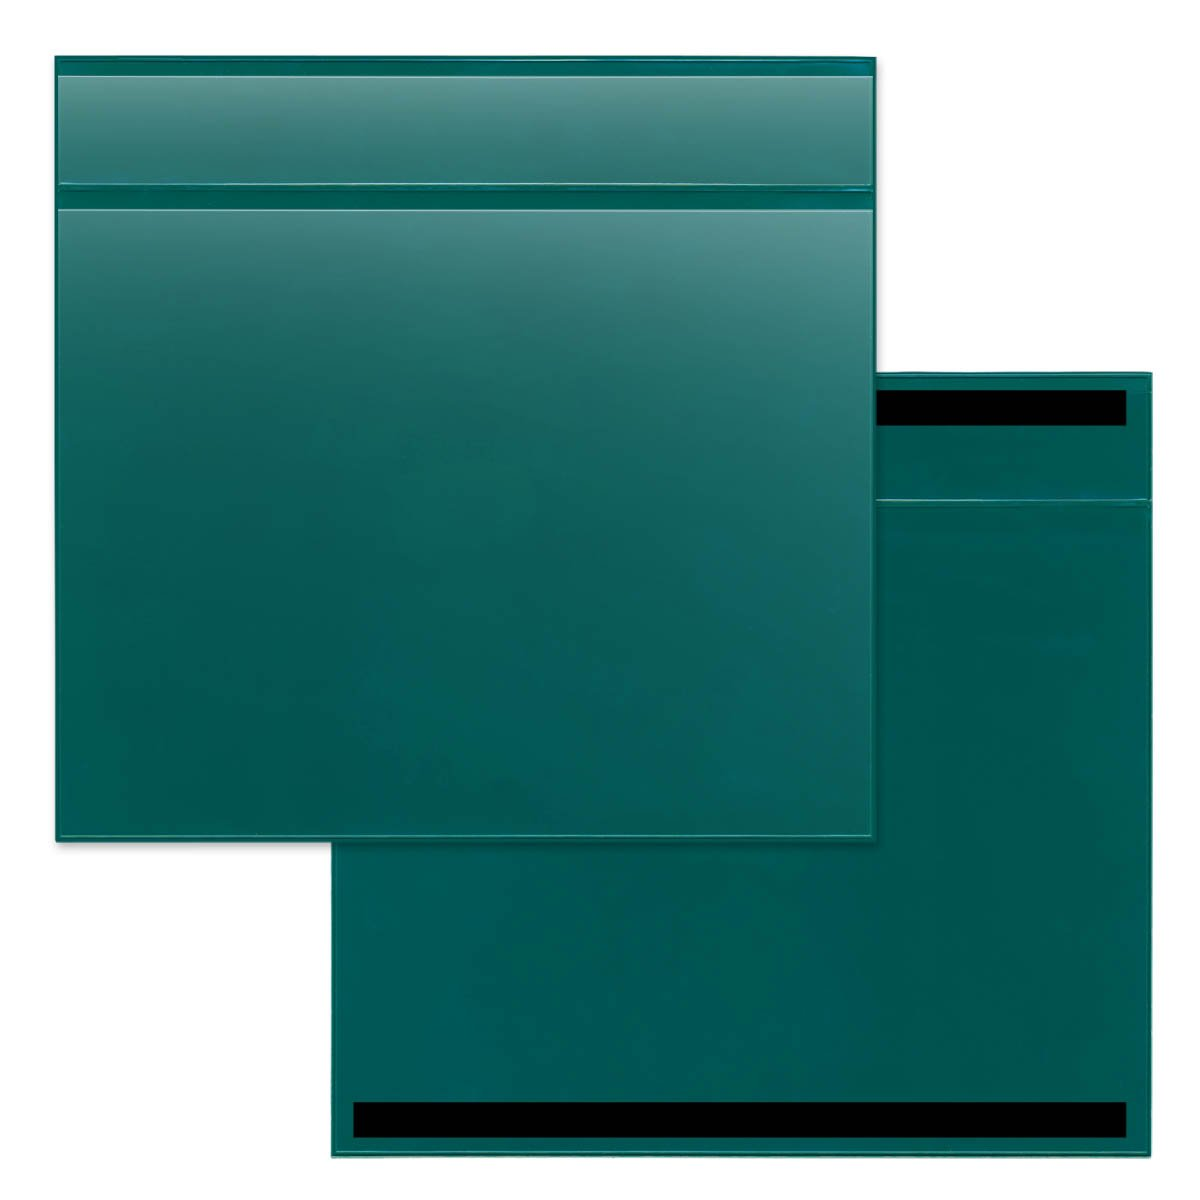 STORE SMART - 25-Pack Green Document Holder with Title Pocket - Horizontal - R529PQGM-25